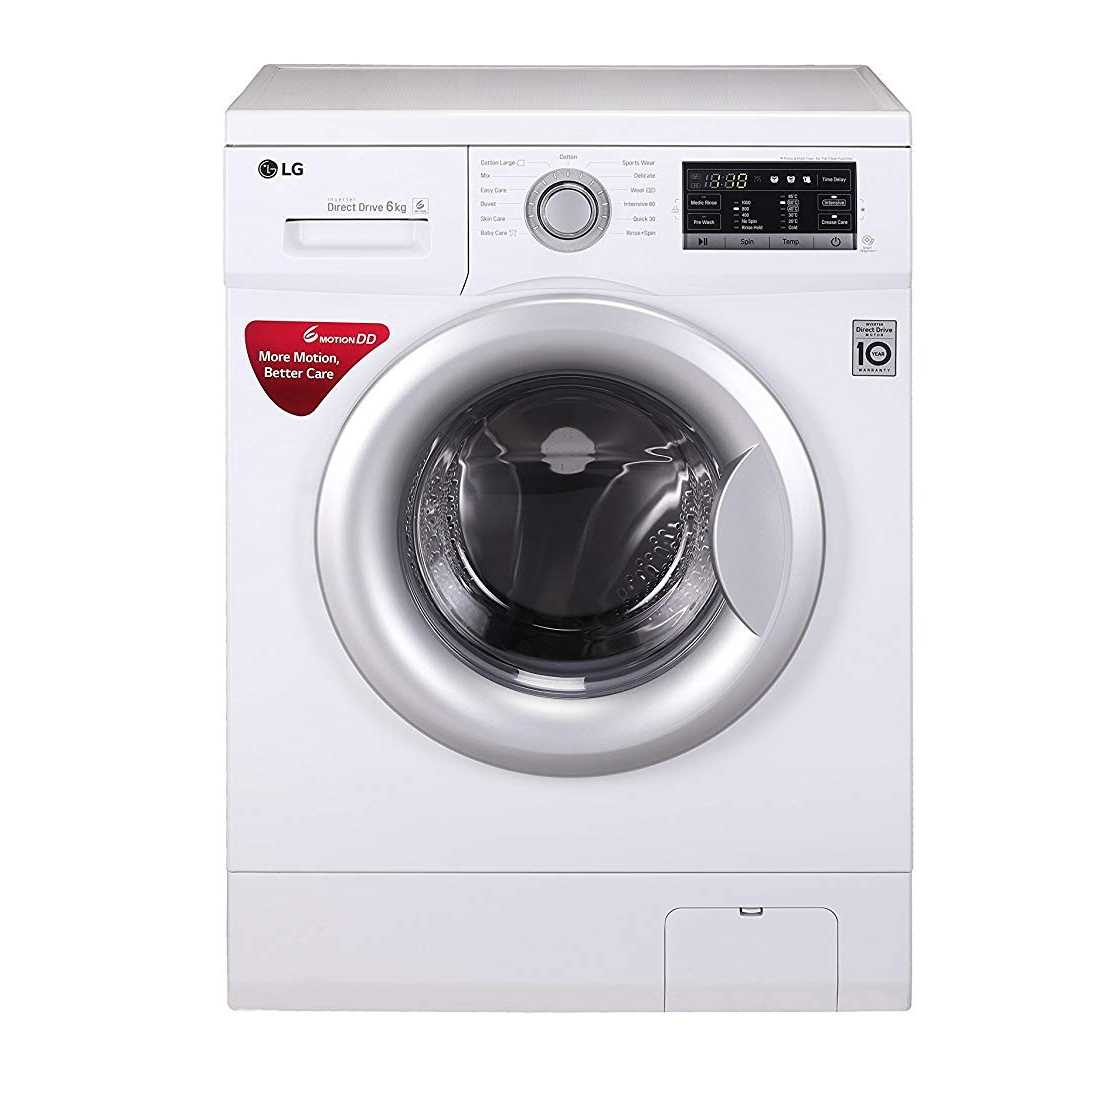 LG FH0G7WDNL12 6.5 Kg Fully Automatic Front Loading Washing Machine